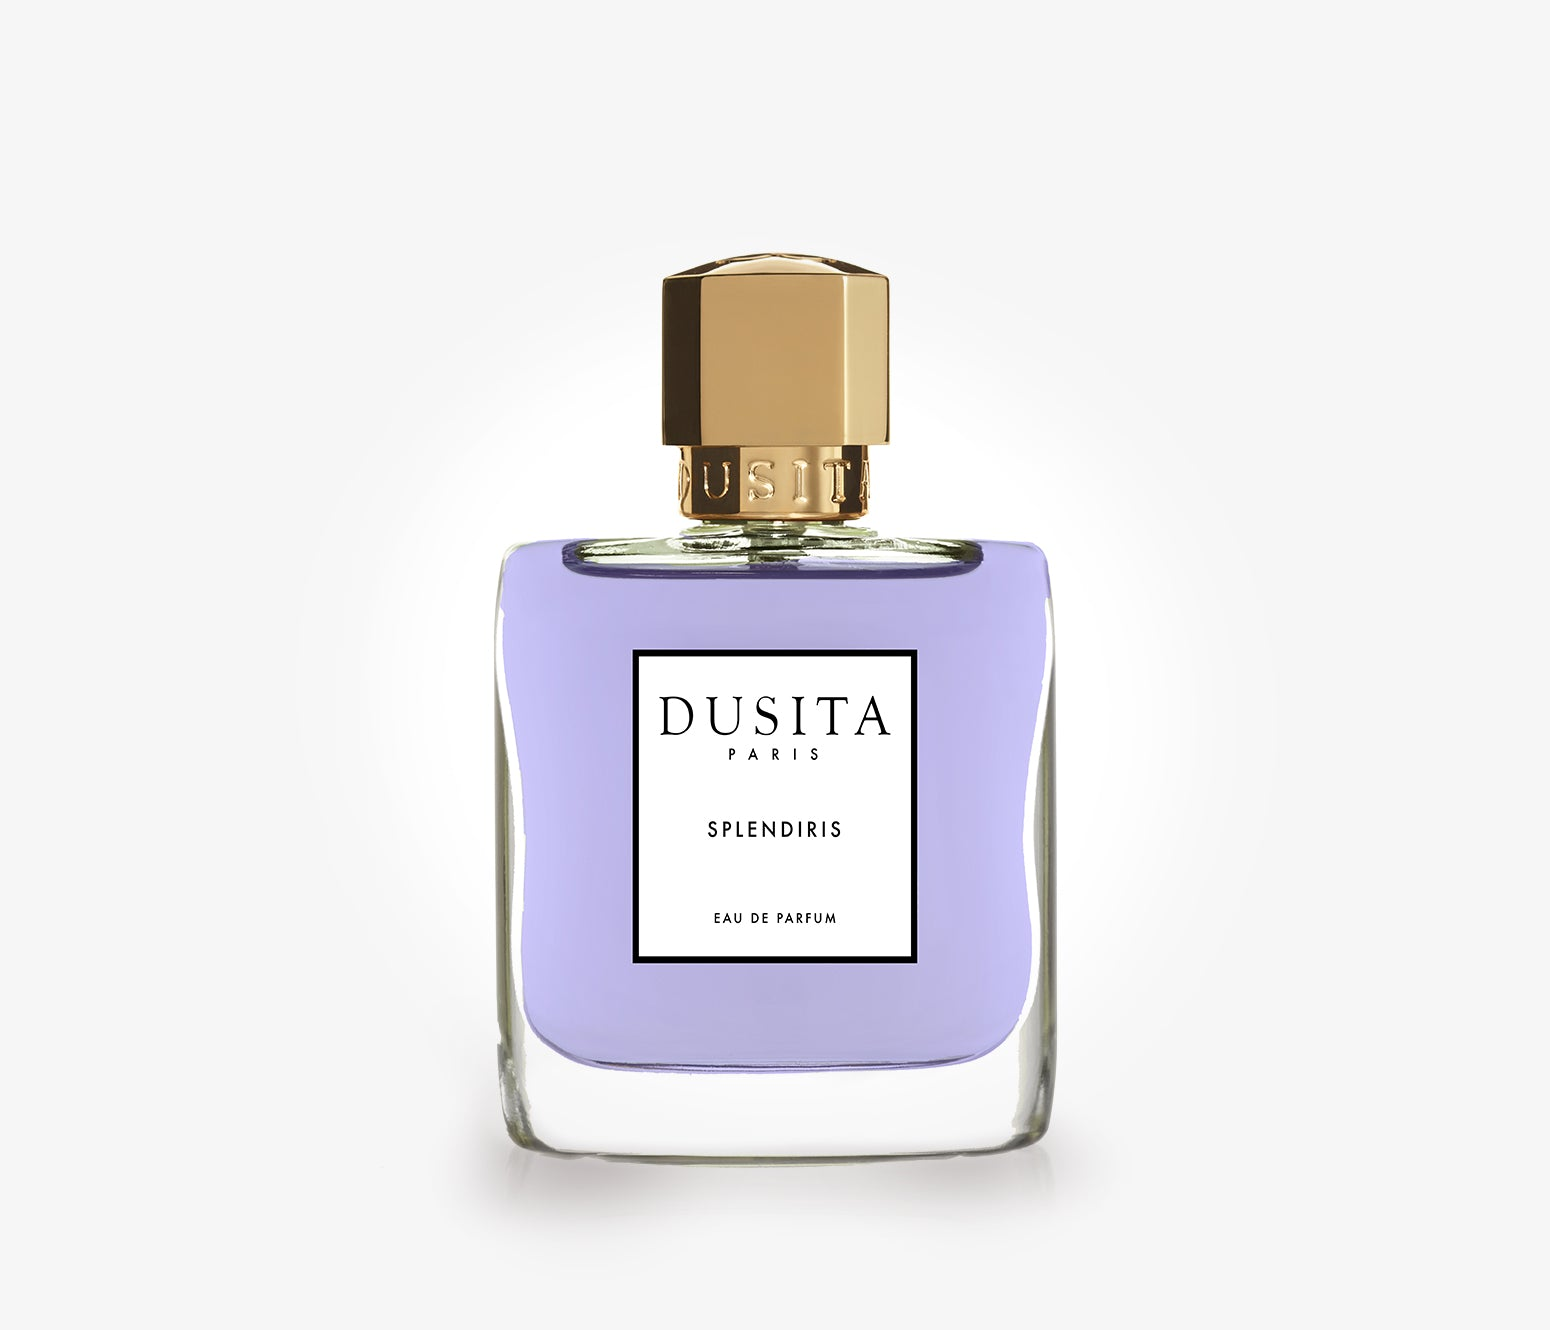 Dusita - Splendiris - 50ml - GLI001 - product image - Fragrance - Les Senteurs